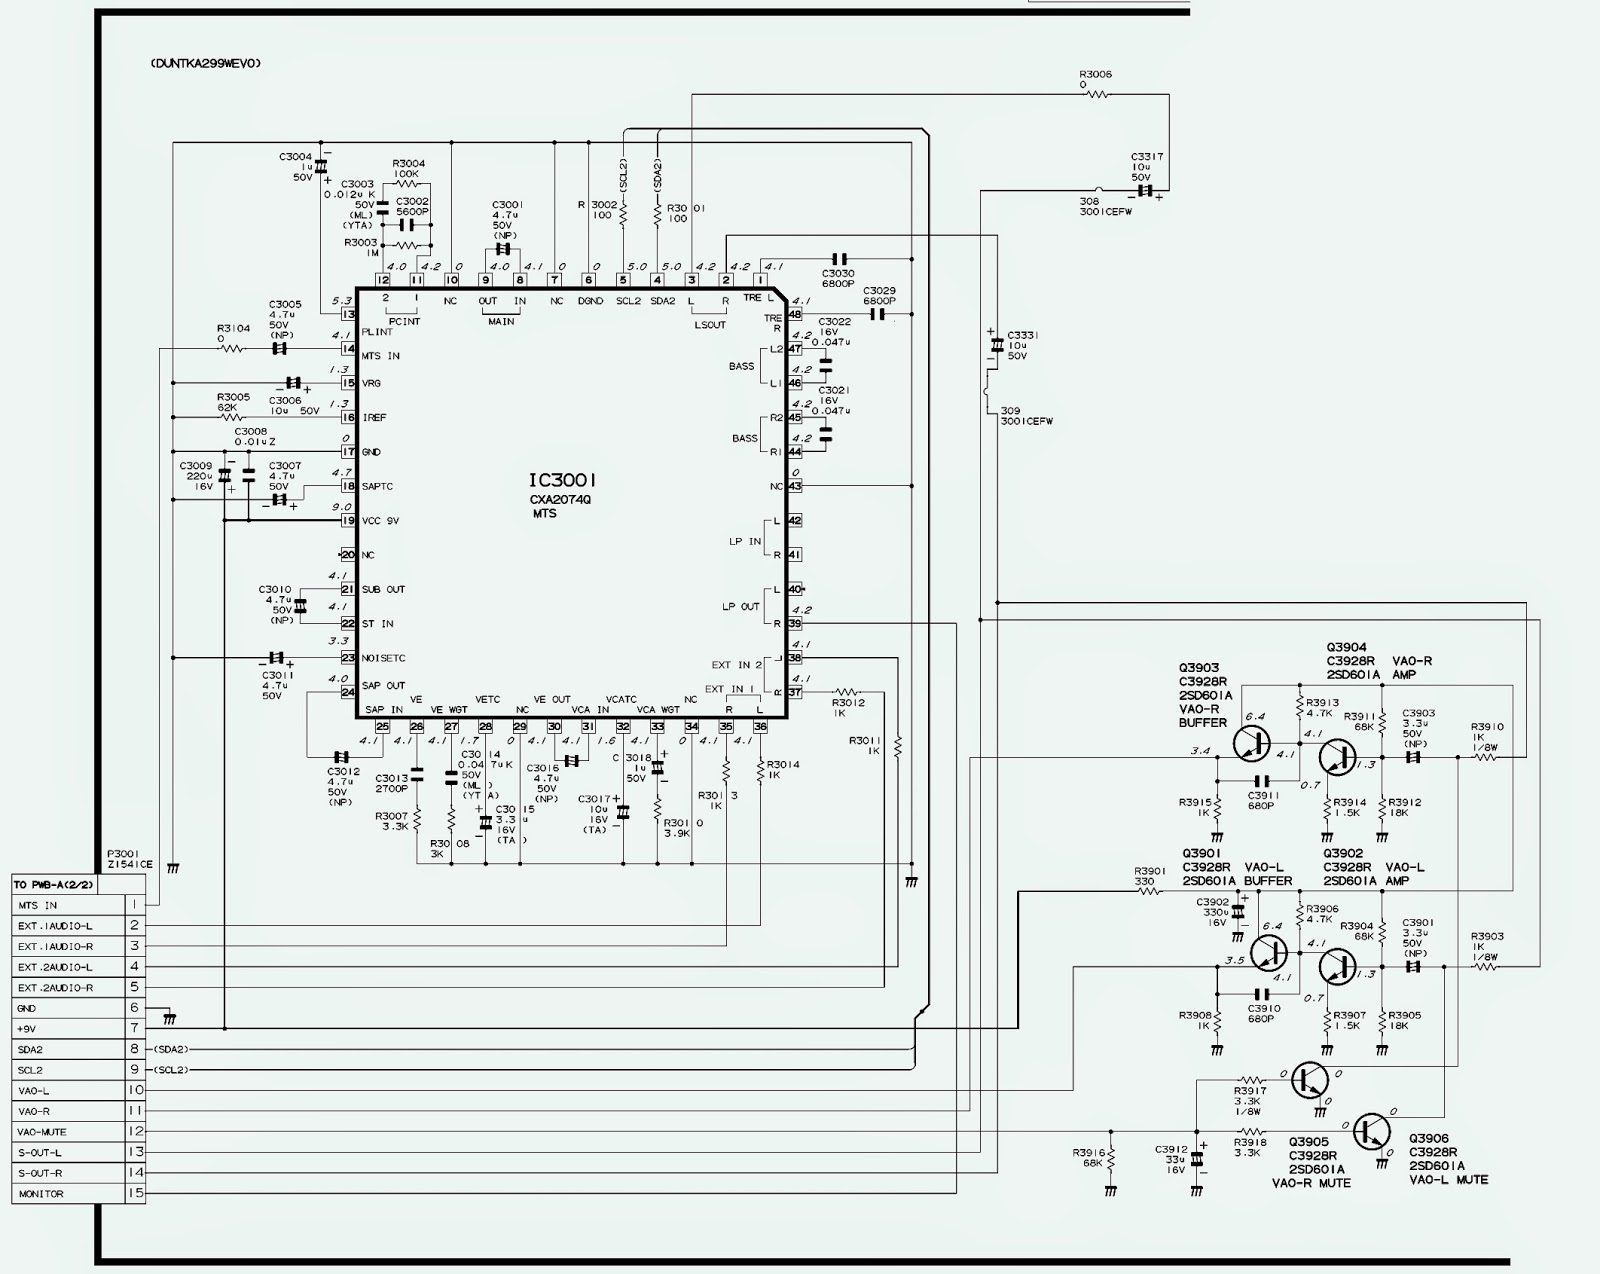 Sharp 21v Fl200 Crt Tv Service Mode Circuit Diagram Schematic Engineering Schematics Plasma Flat Screen Click On The To Zoom In